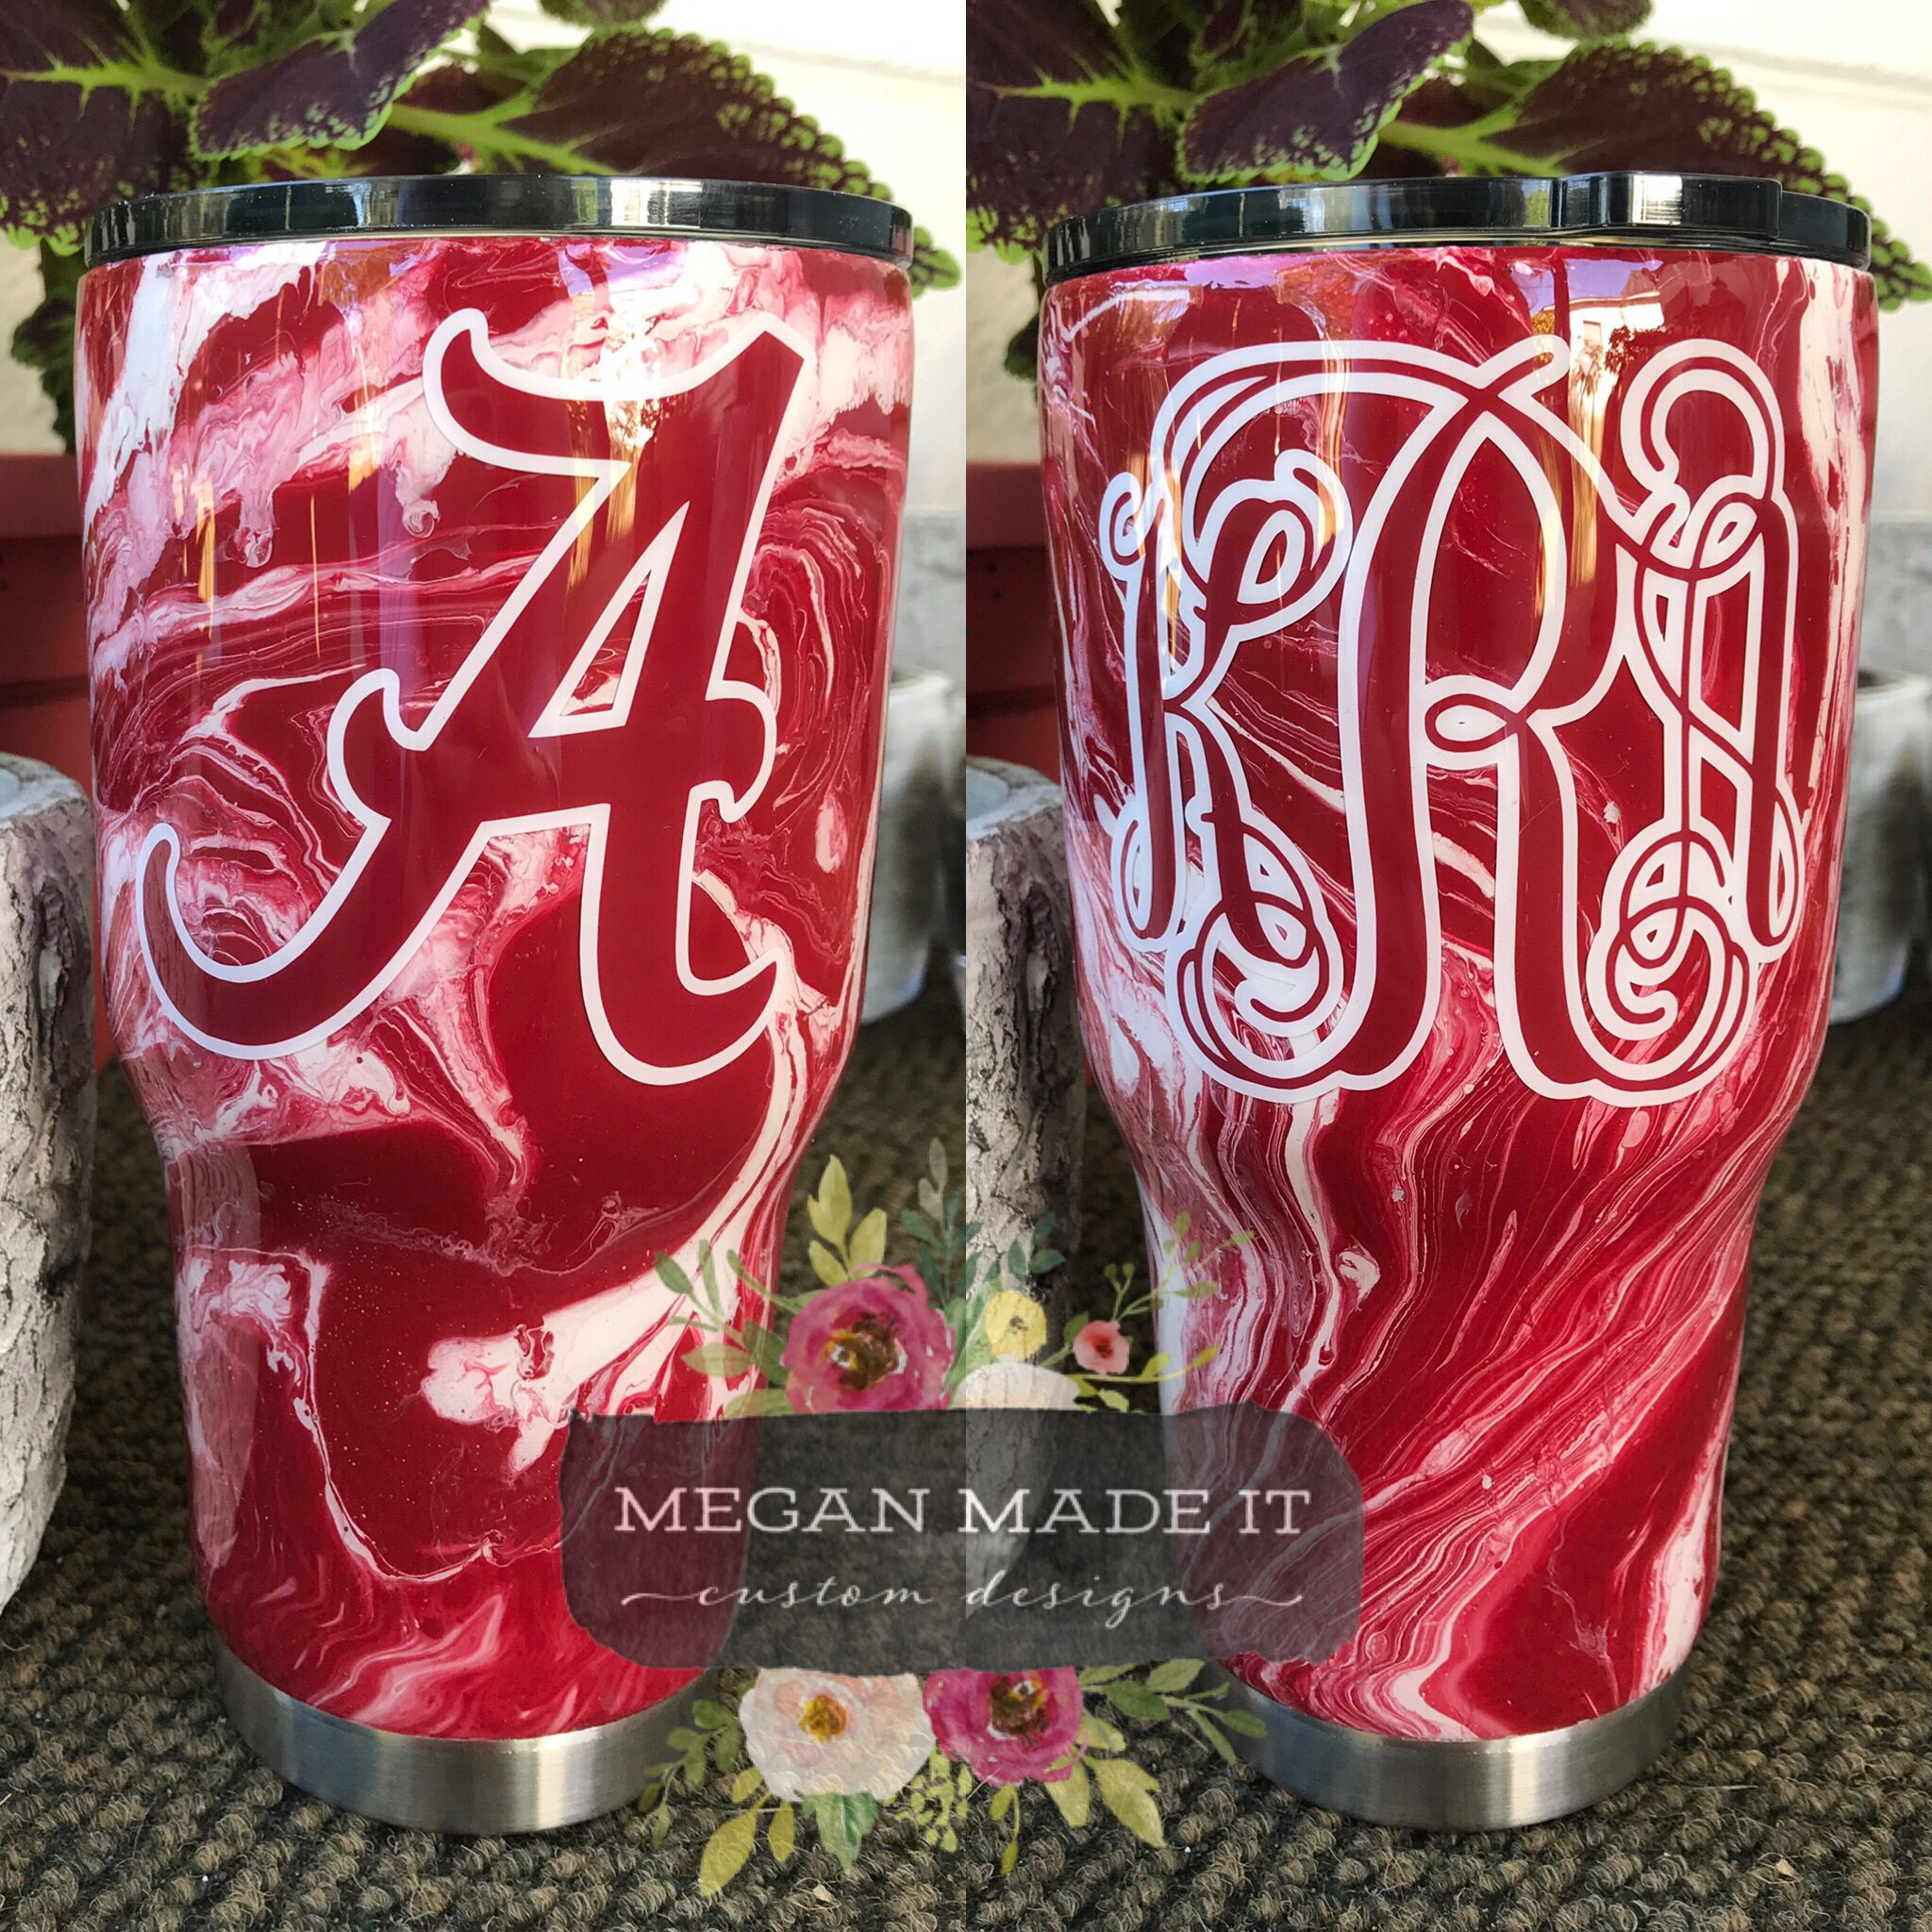 Red White Hydrodipped Monogram Tumbler Monogram Tumbler Monogrammed Tumbler Cups Custom Tumbler Cups